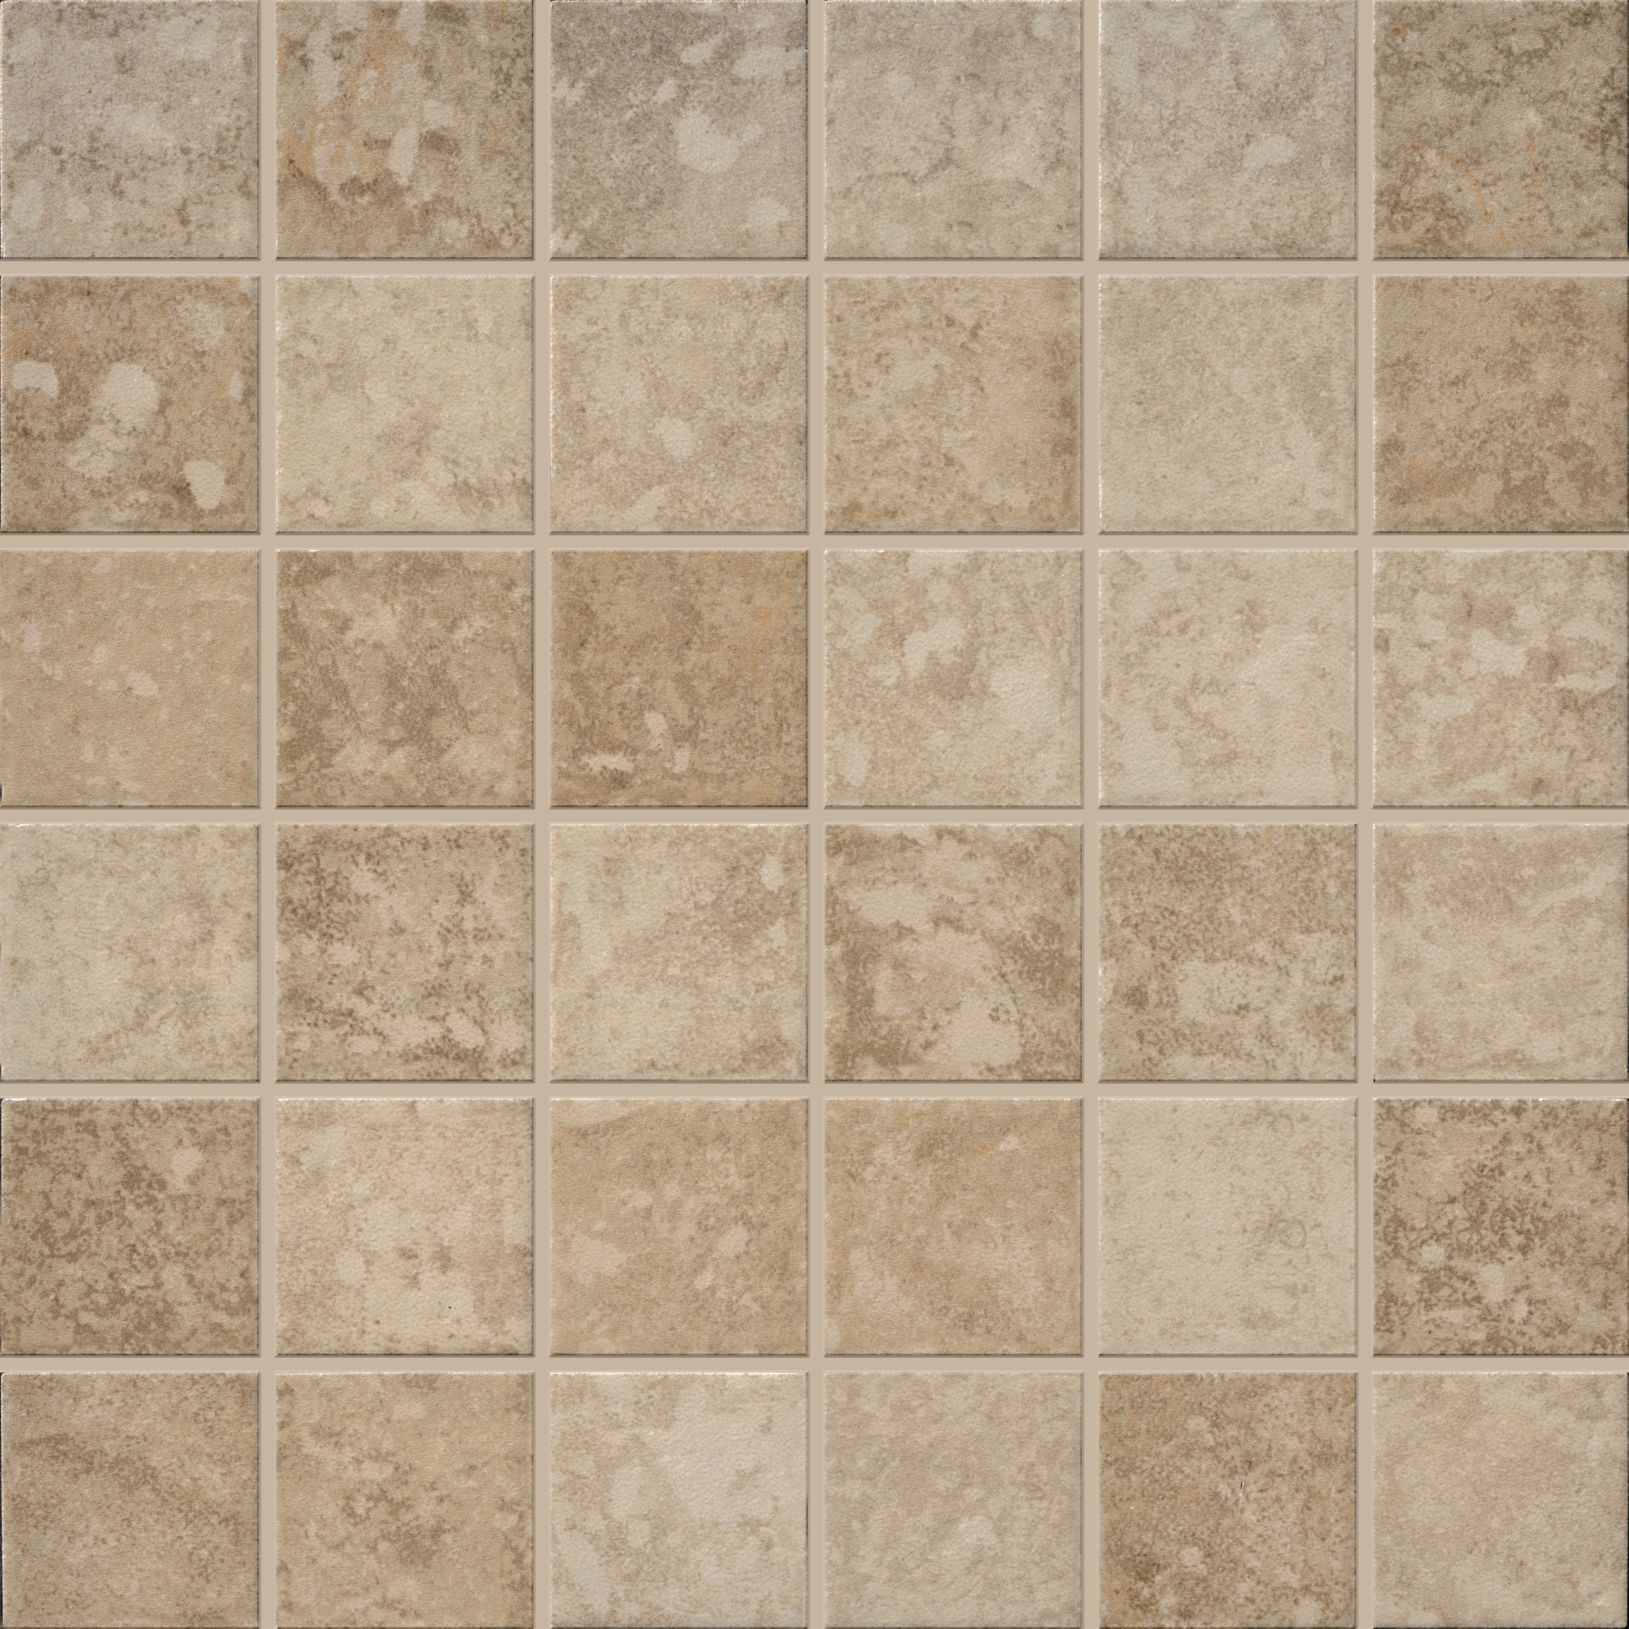 CeramicPorcelainTile Steppington T530-ST95 BaronialBeige-TraditionalTaupeBlend